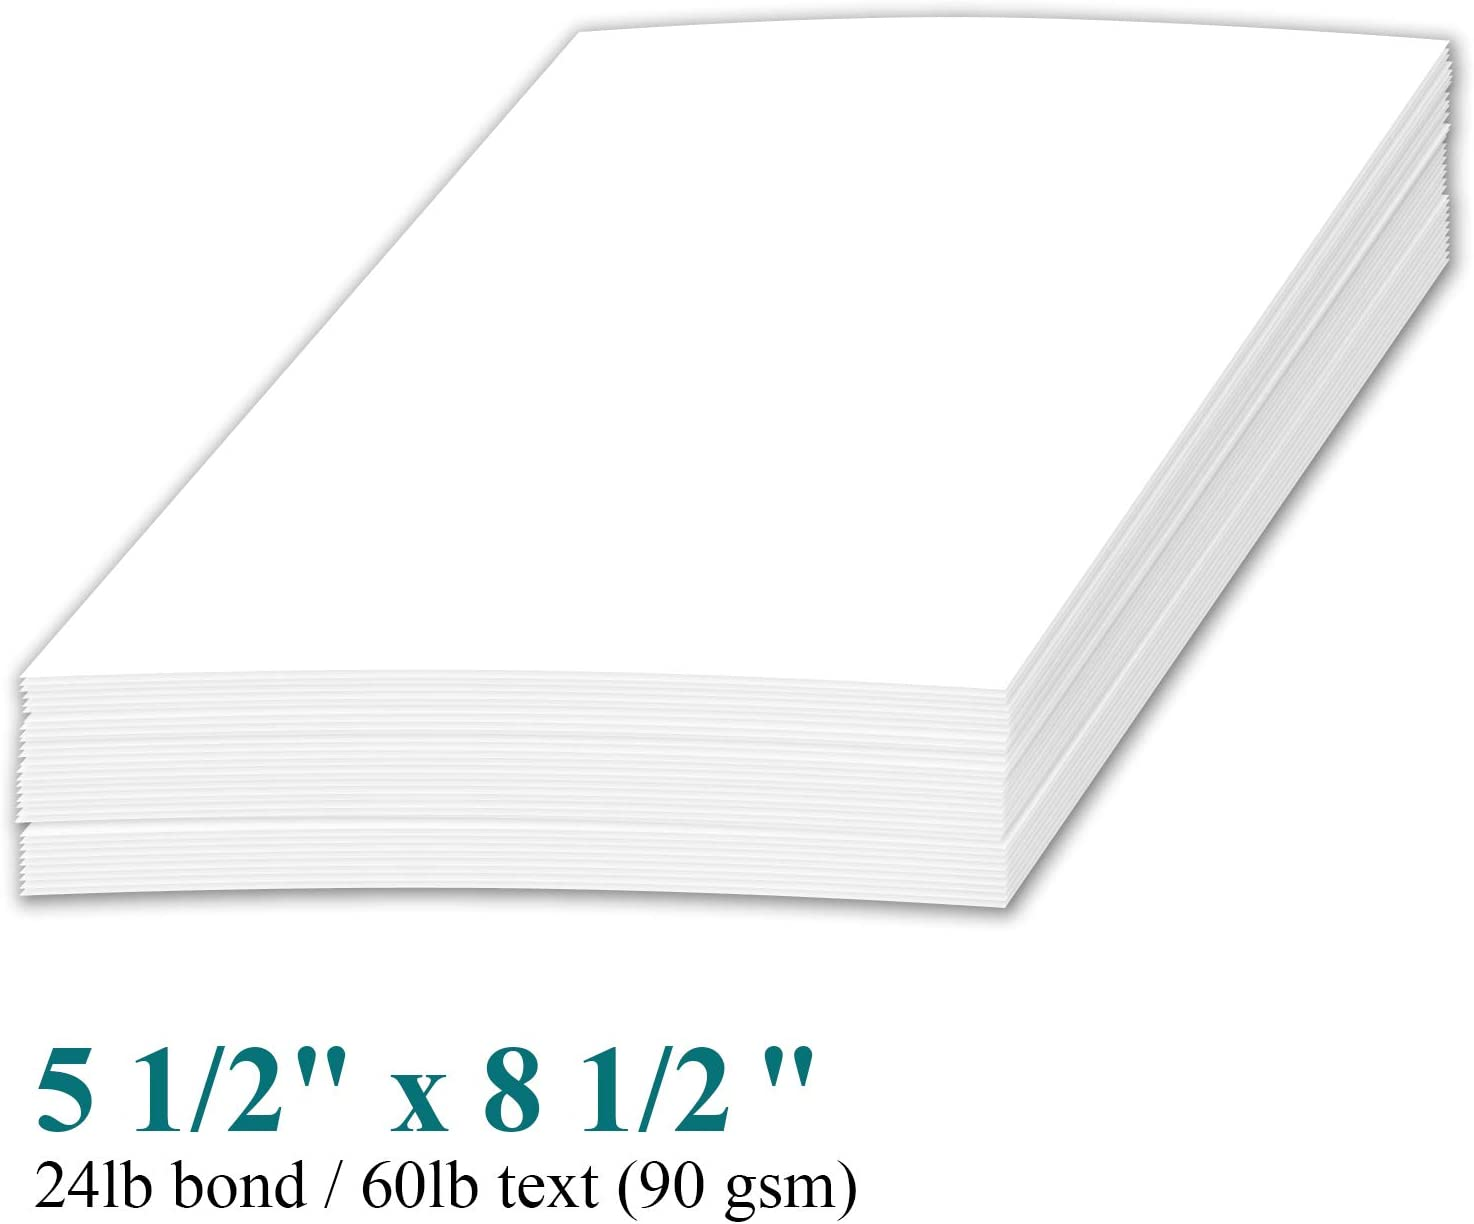 Half Letter Size White Paper 20lb 500 Sheets 8.5 x 5.5 Inches